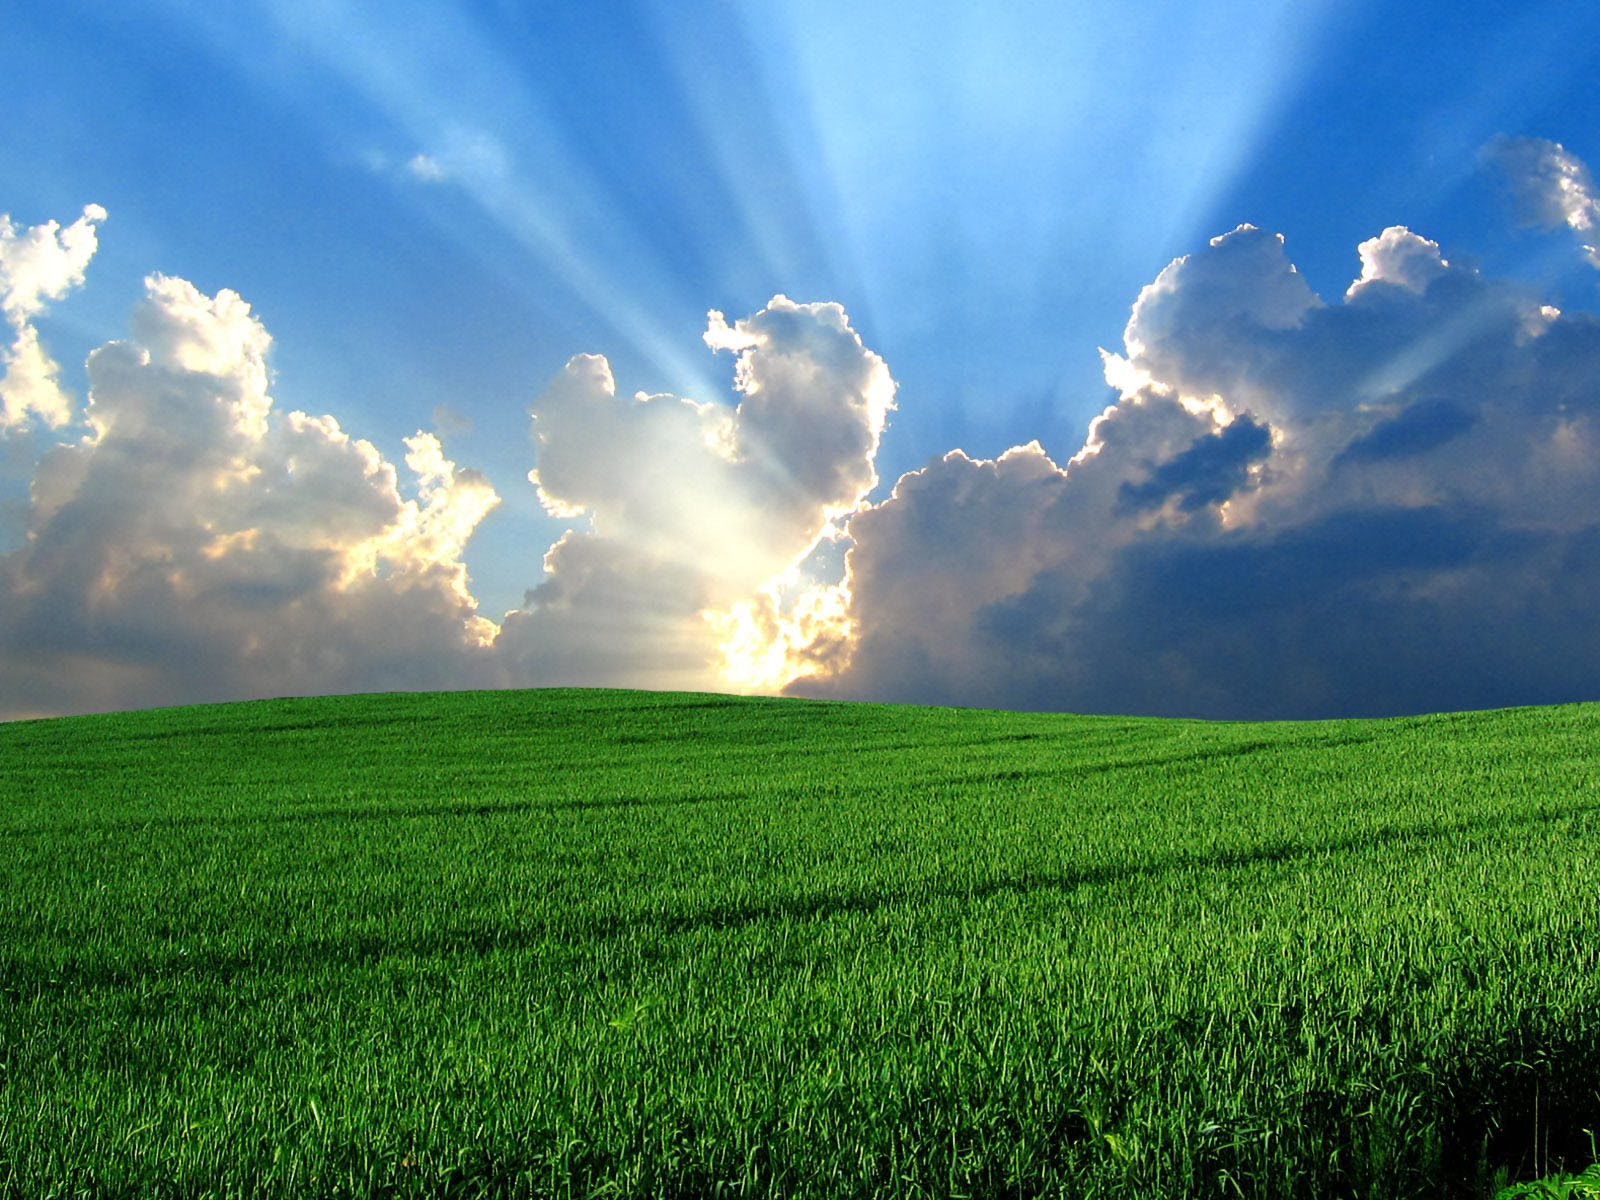 Windows Xp Bliss wallpaper free desktop backgrounds and wallpapers